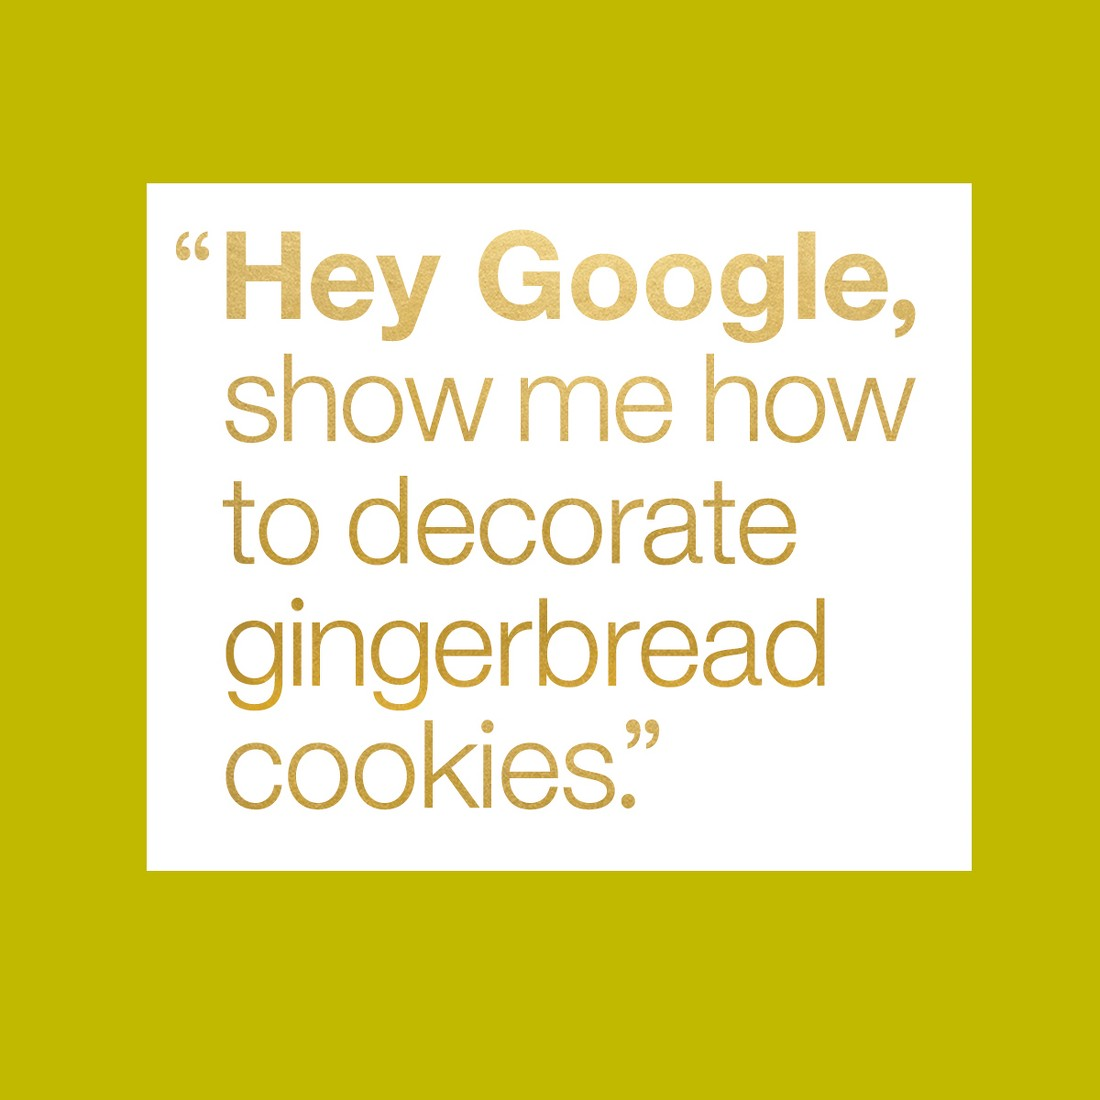 """Hey Google, show me how to decorate gingerbread cookies."""